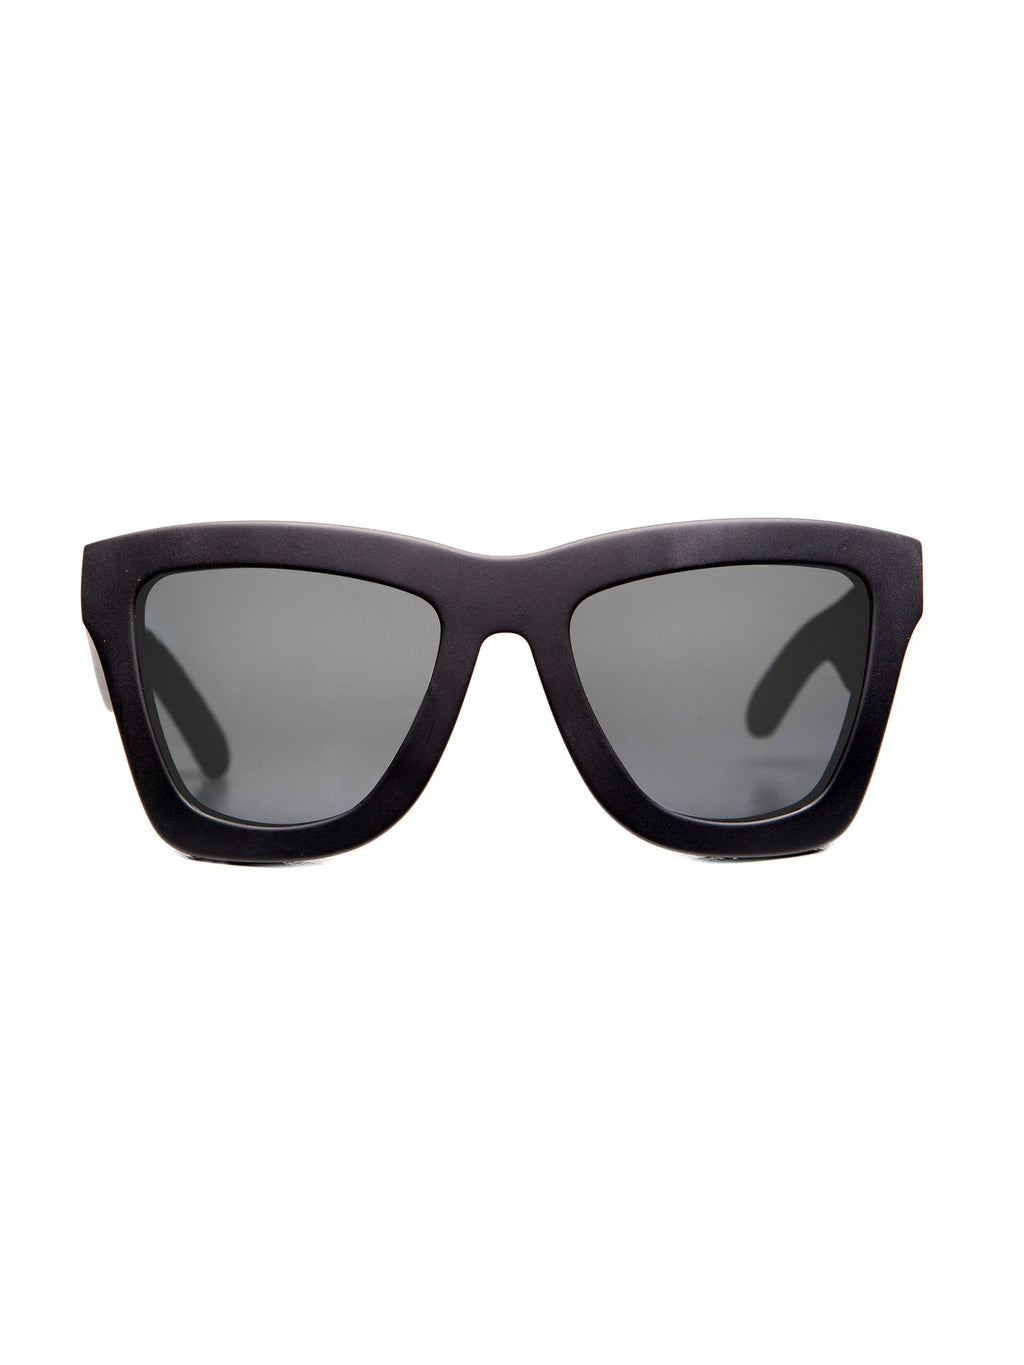 VALLEY EYEWEAR DB | Matte Black / Black Lens